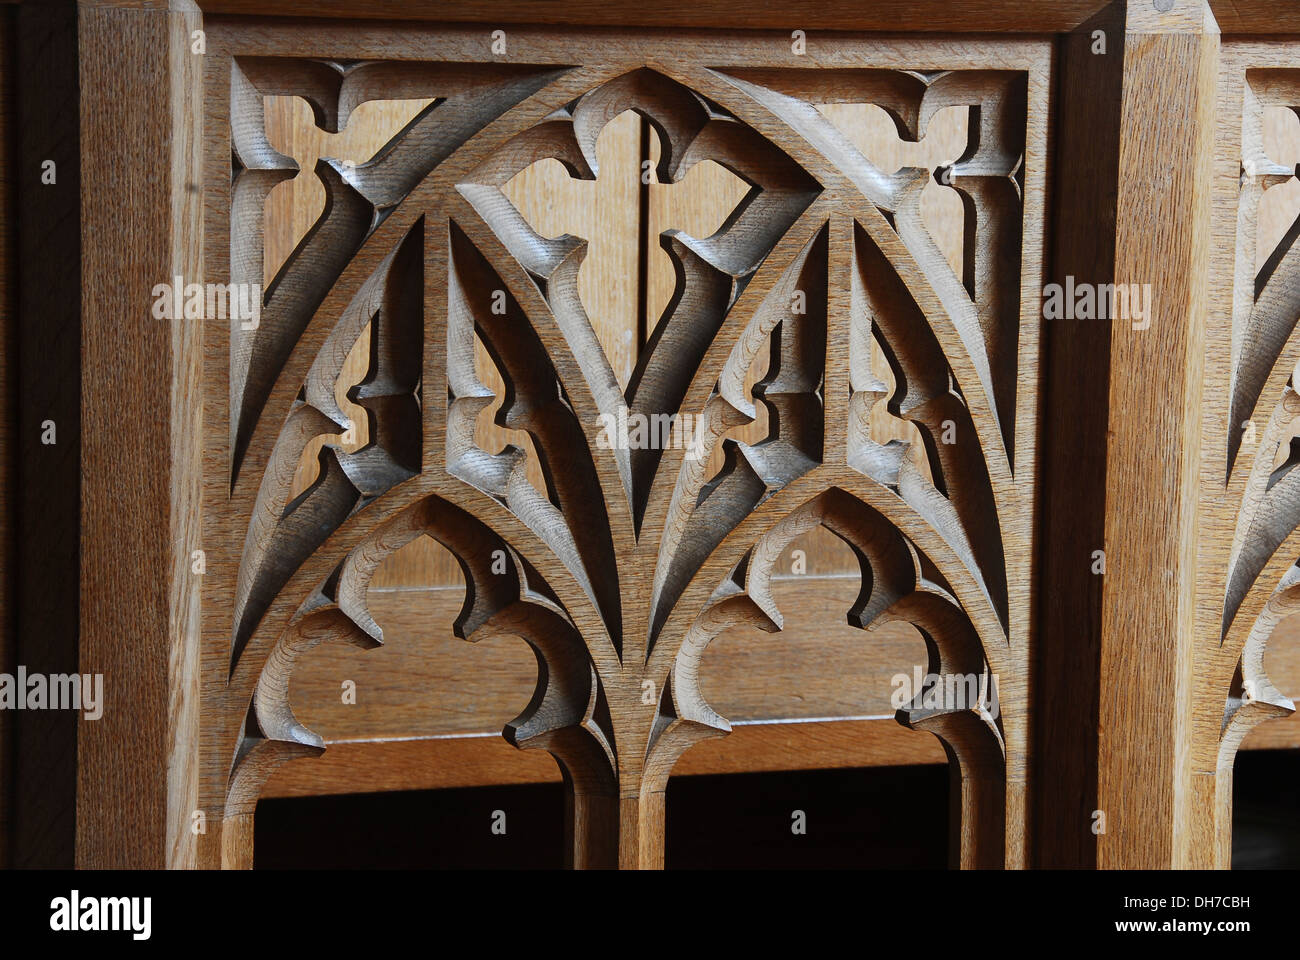 An ecclesiastical wooden carving UK - Stock Image